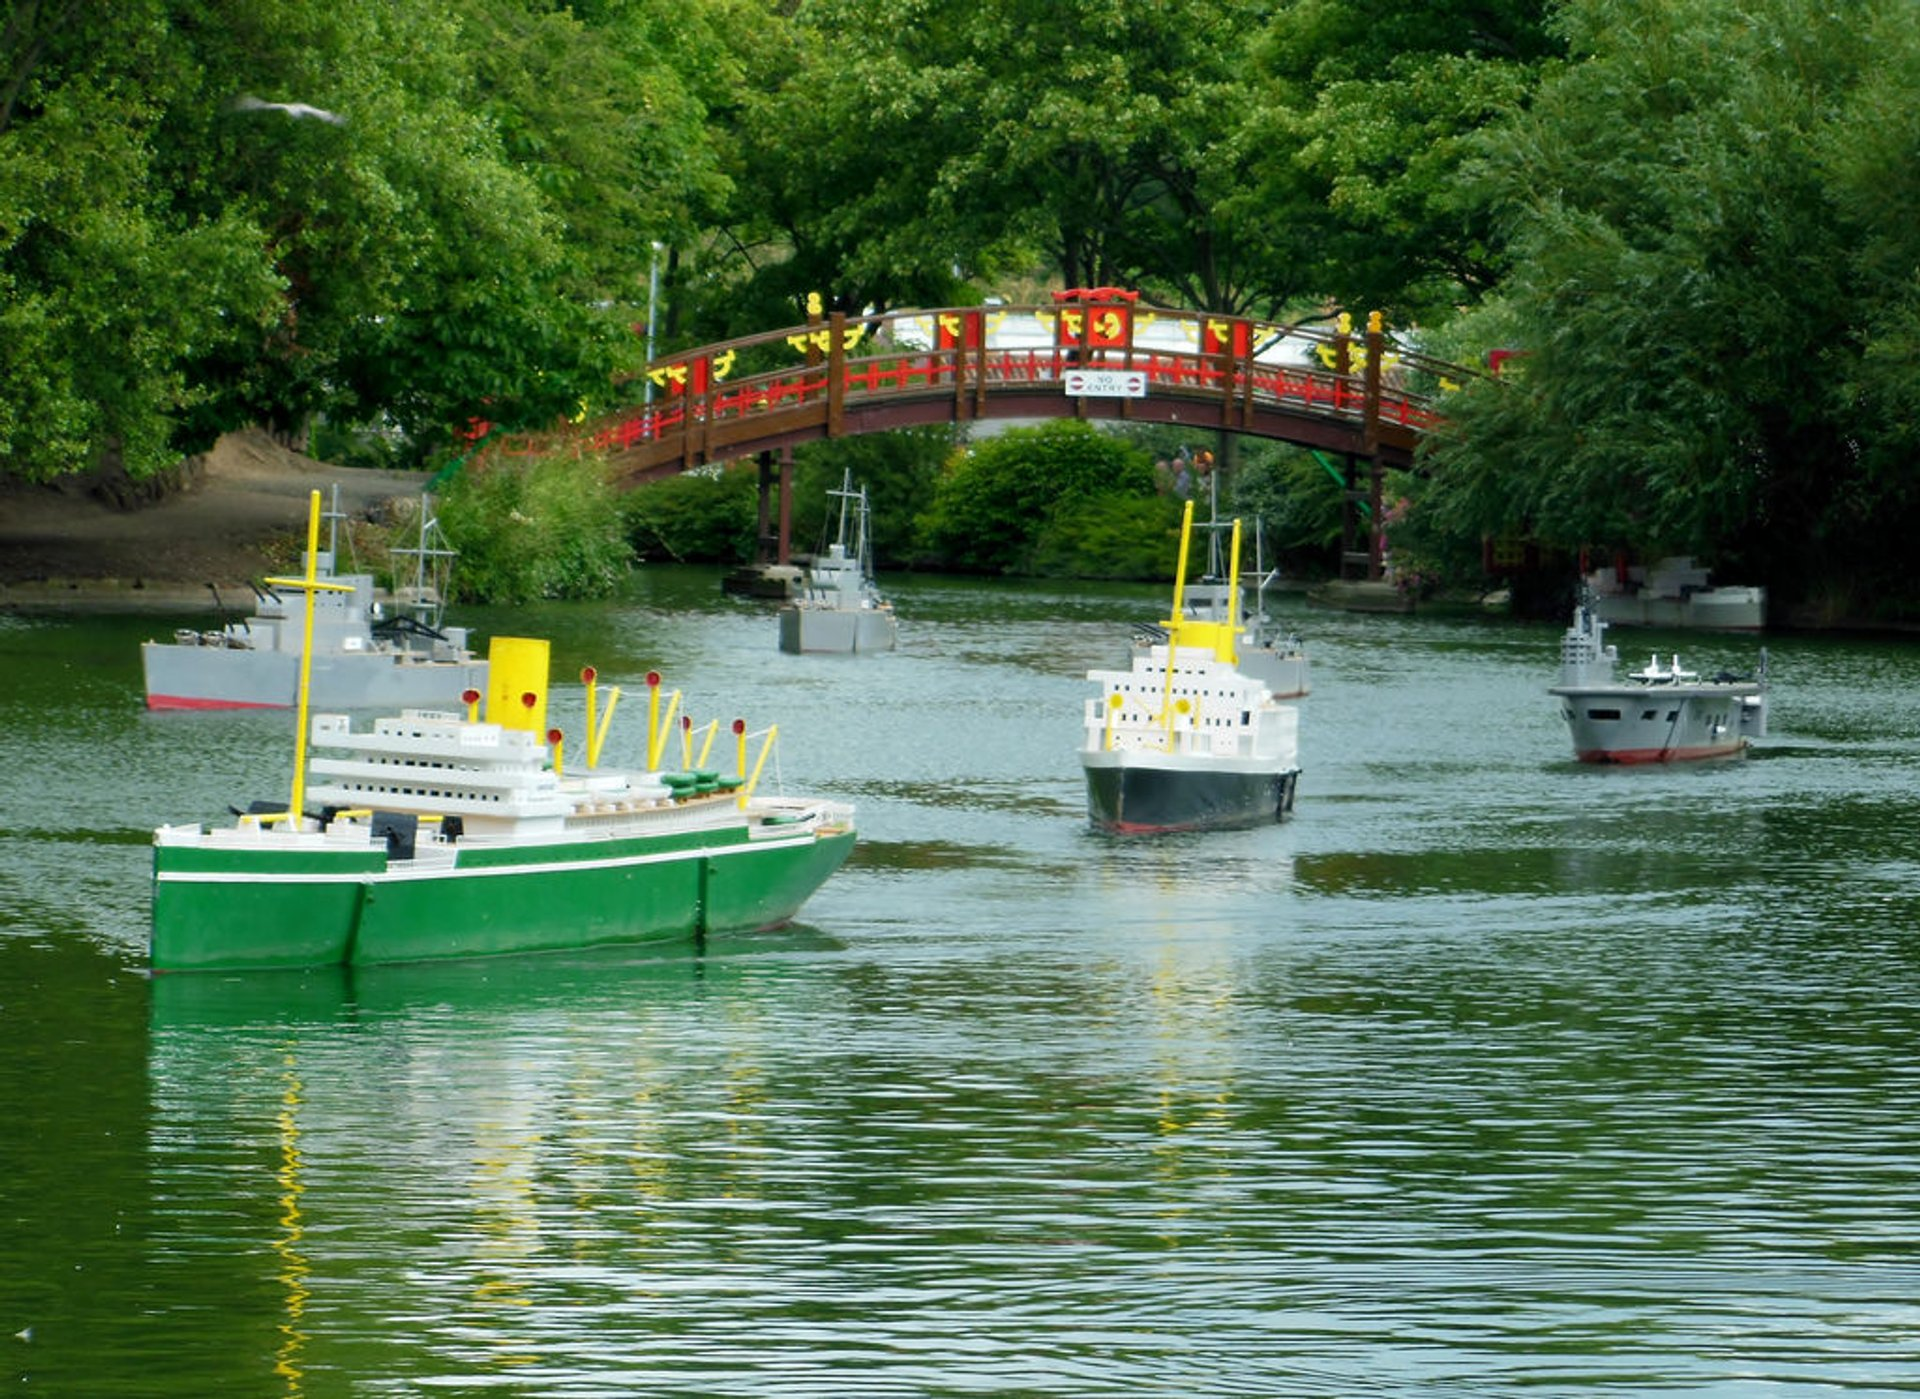 Peasholm Park Naval Warfare in England - Best Season 2020